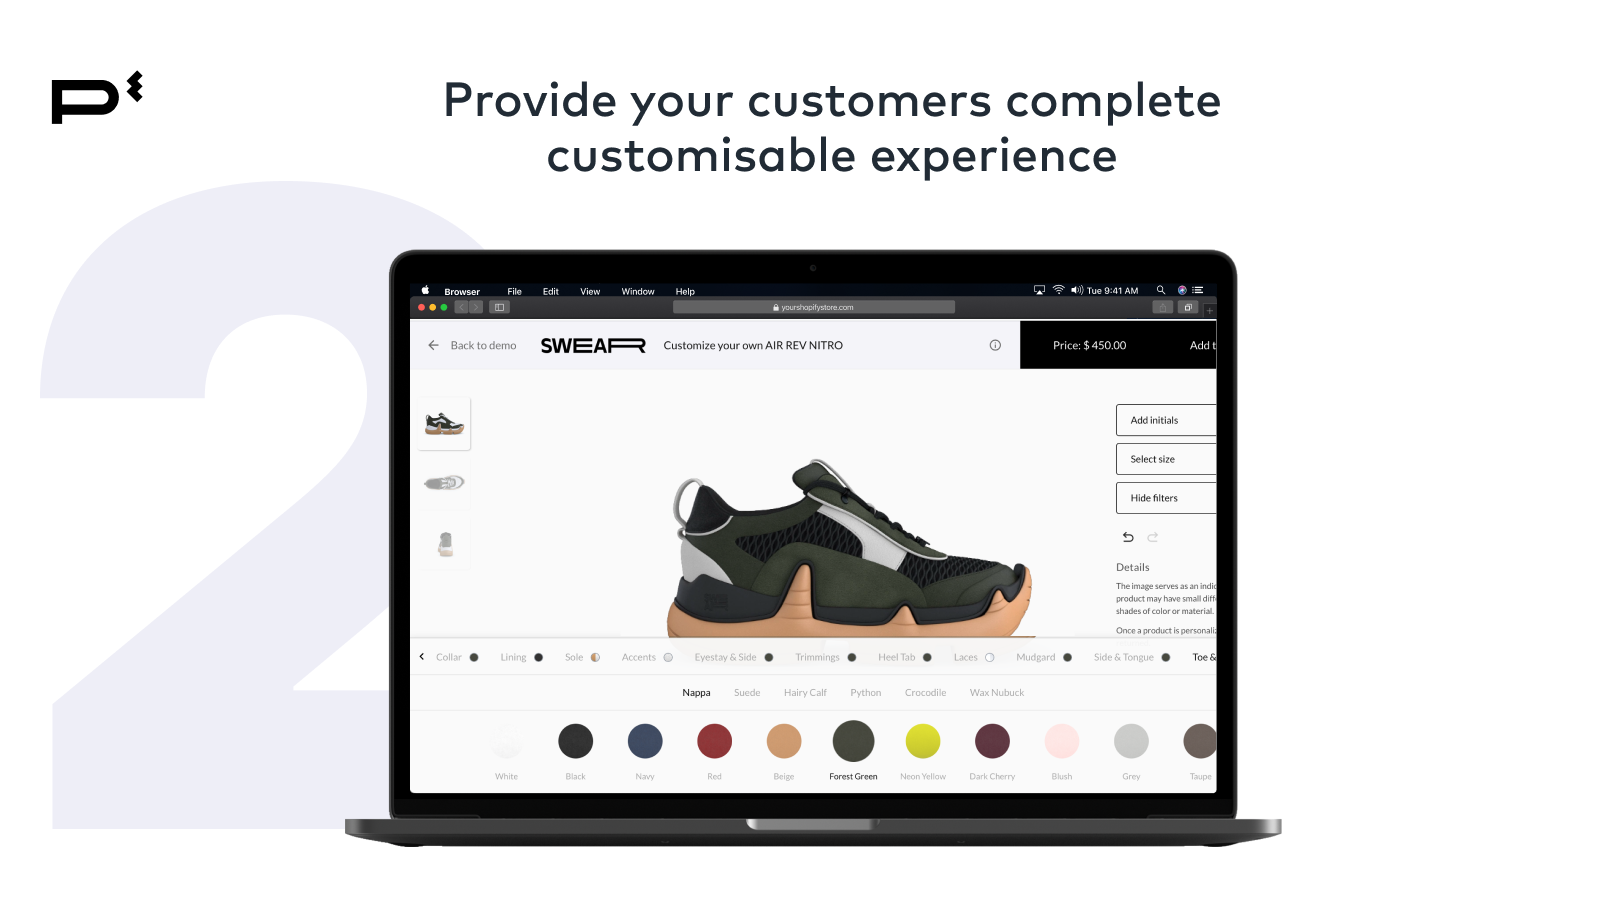 Customers Customisable Experience